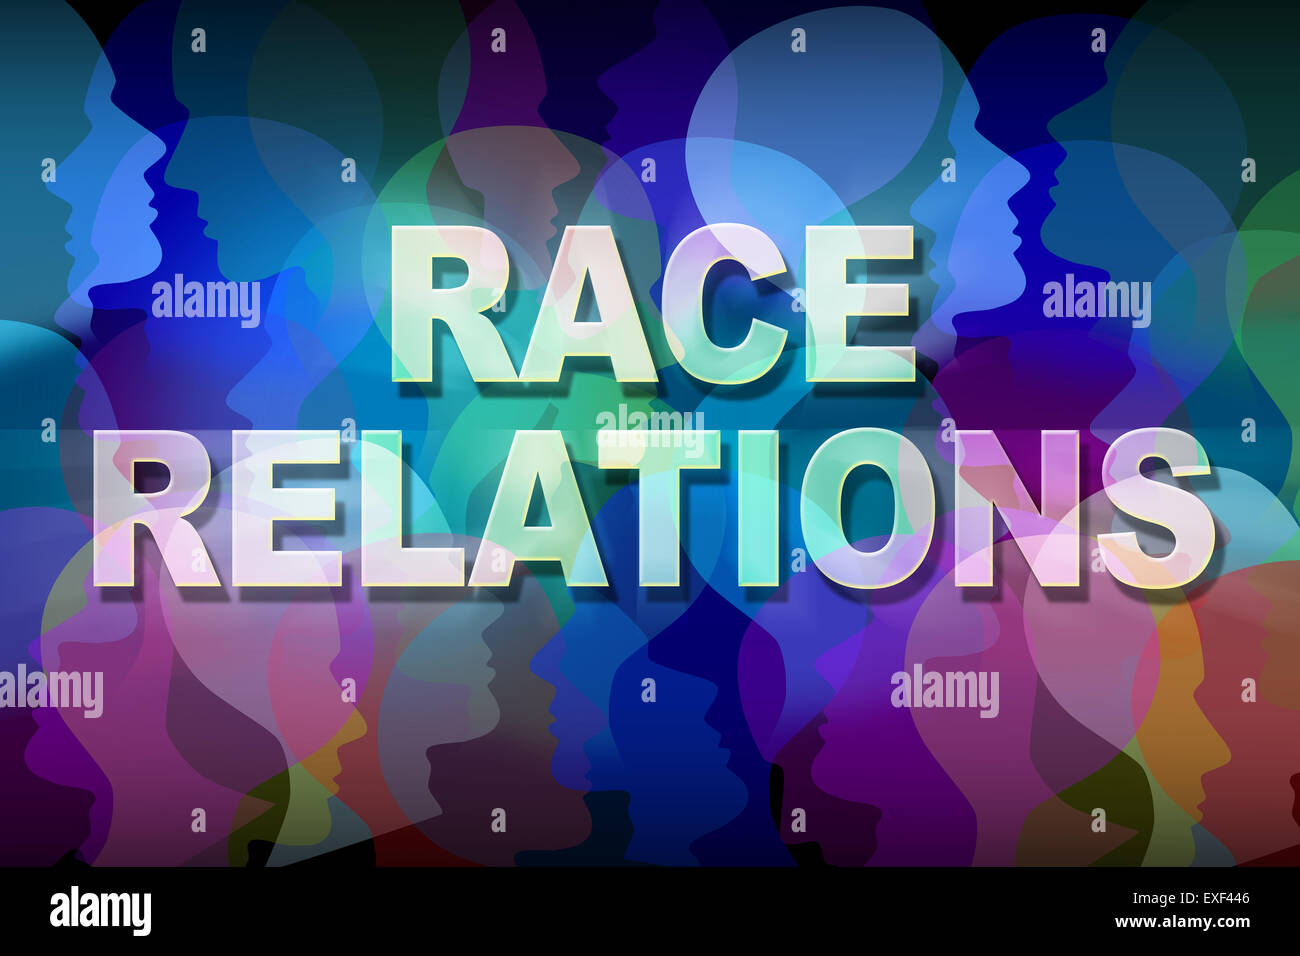 Race Relations Social Issue Concept As A Group Of People Heads And